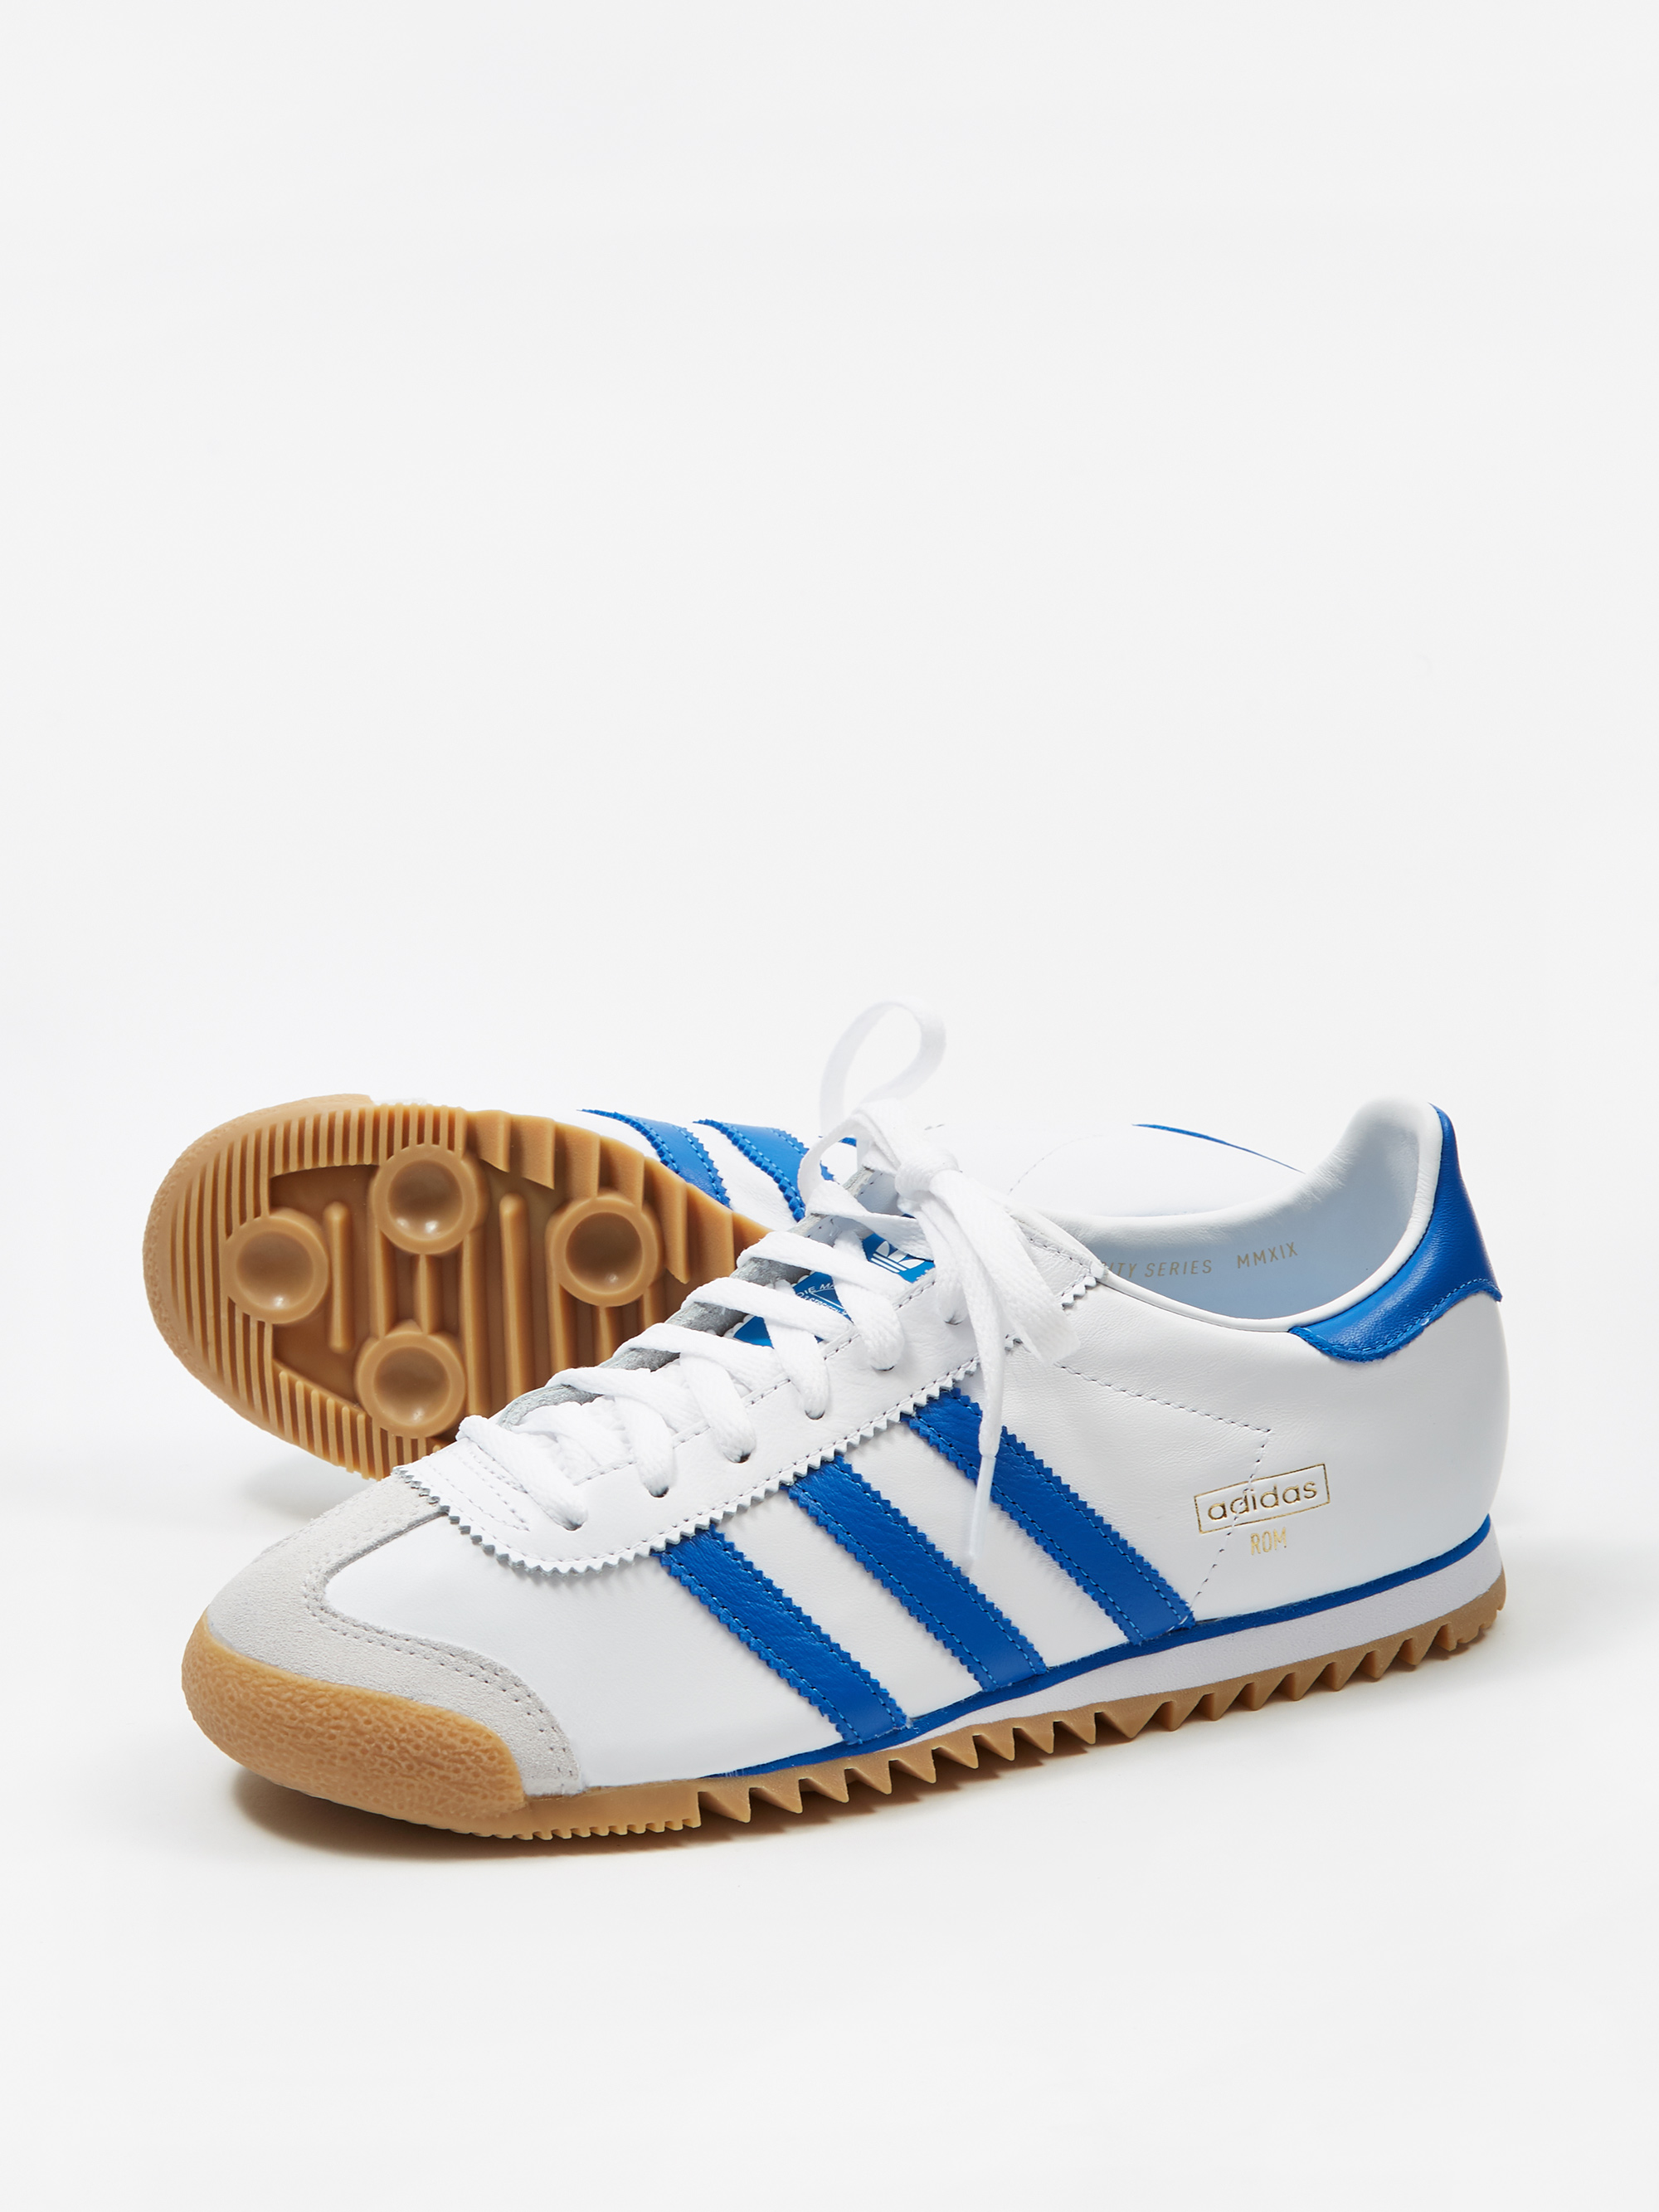 8ec13fa6f70206 Adidas ROM - White Royal Blue Gum